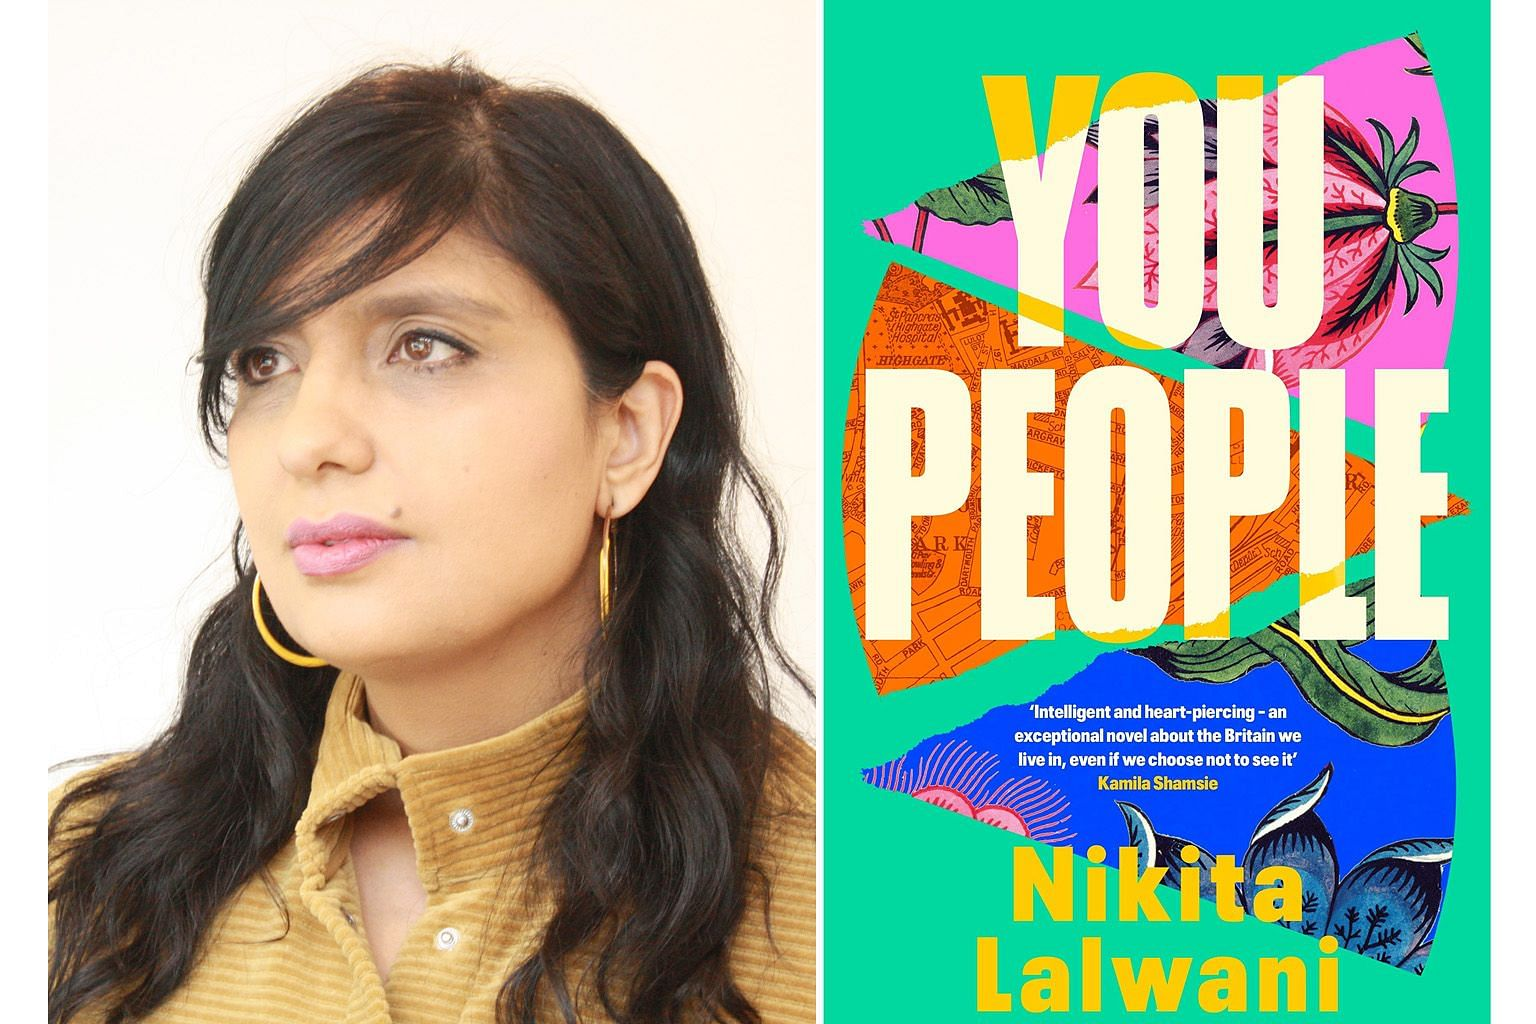 Author Nikita Lalwani poses difficult moral questions in her third novel, You People.